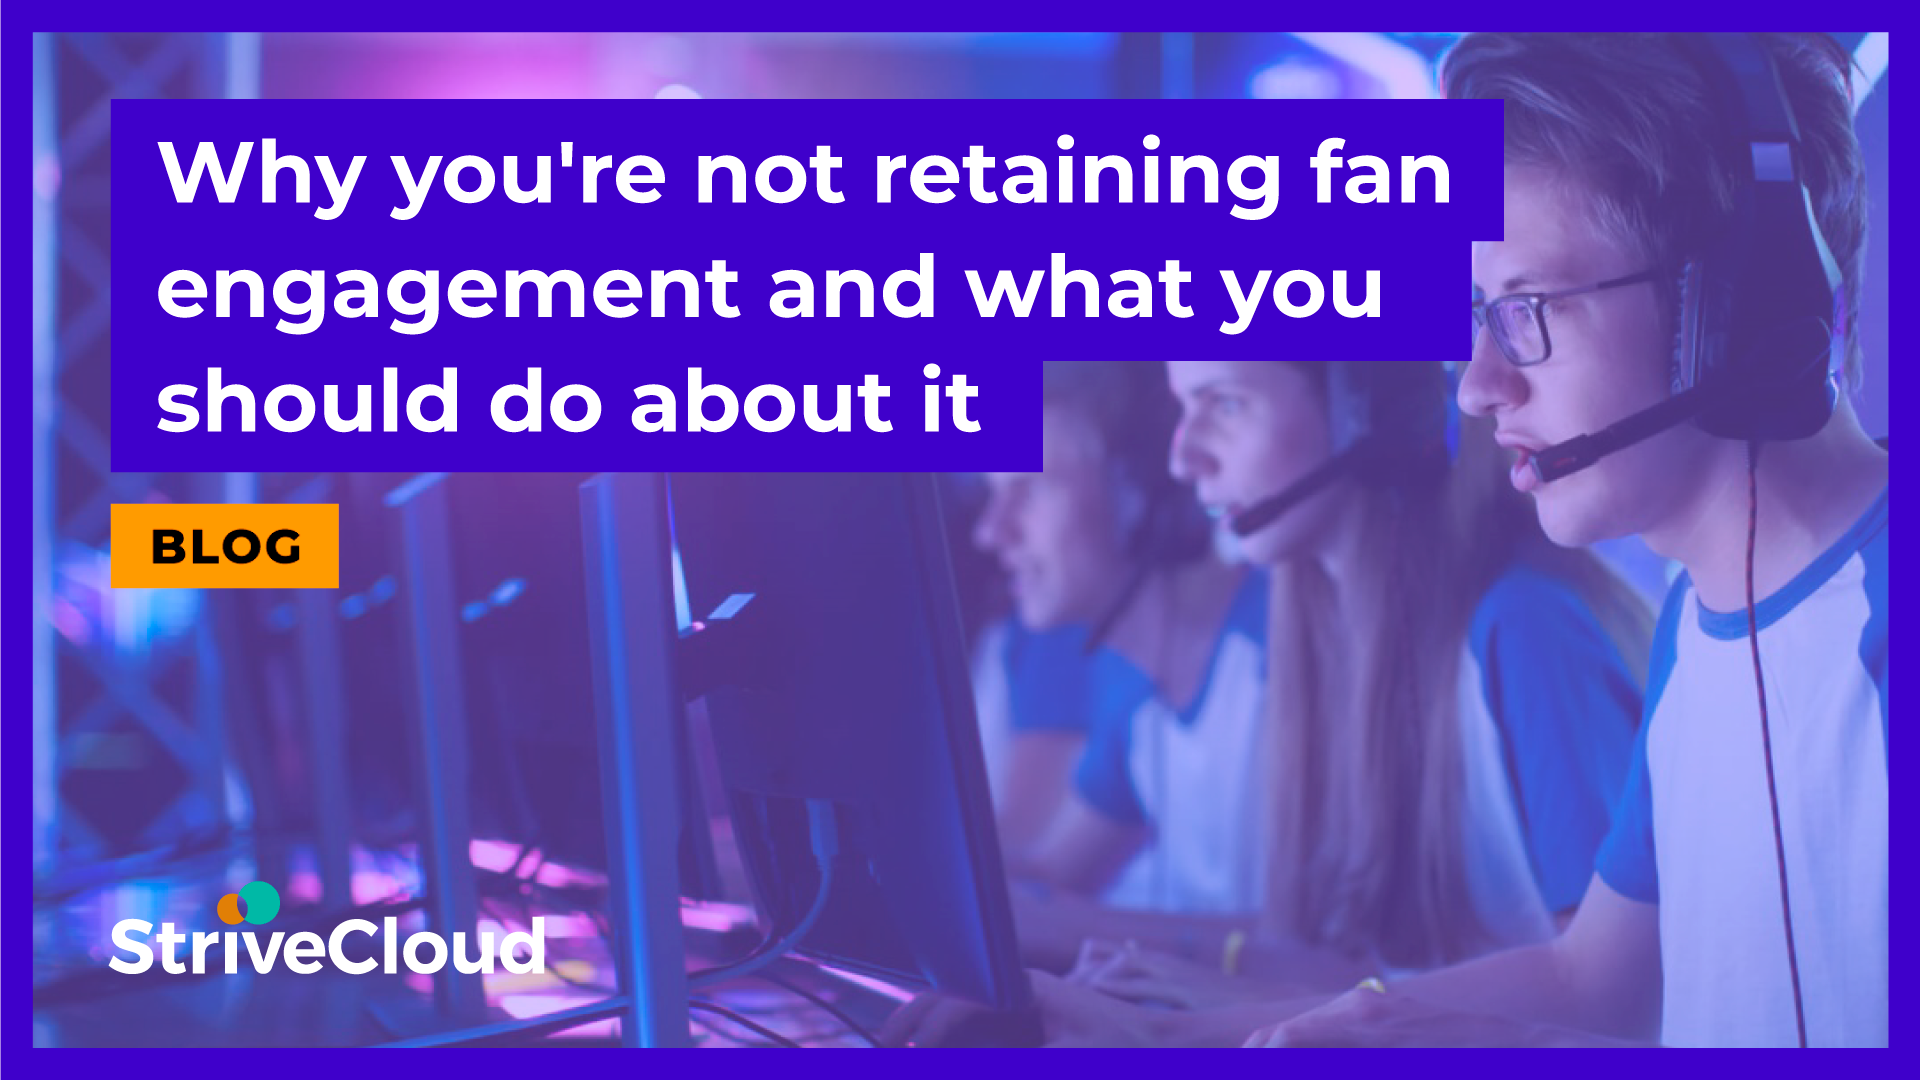 Why you're not retaining fan engagement and what you should do about it